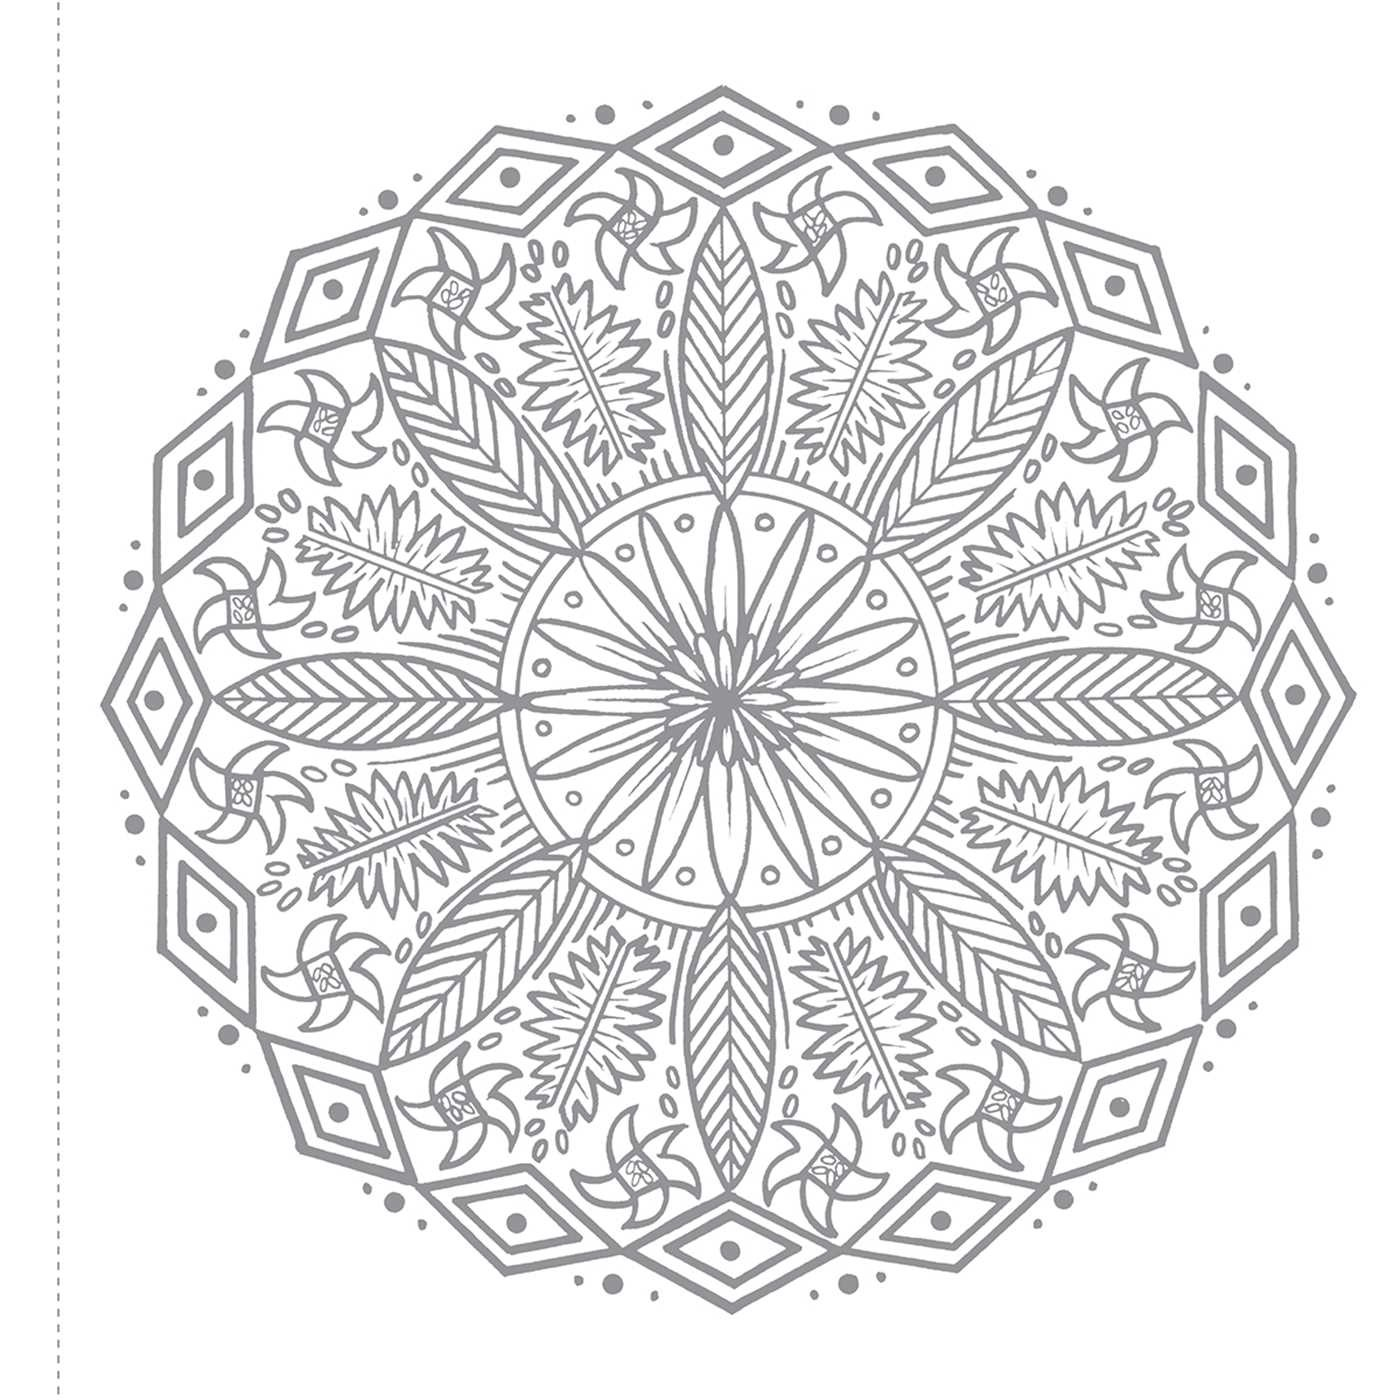 Glowing Mandalas Coloring Book | Book by Susan Hayes, Gilly ...